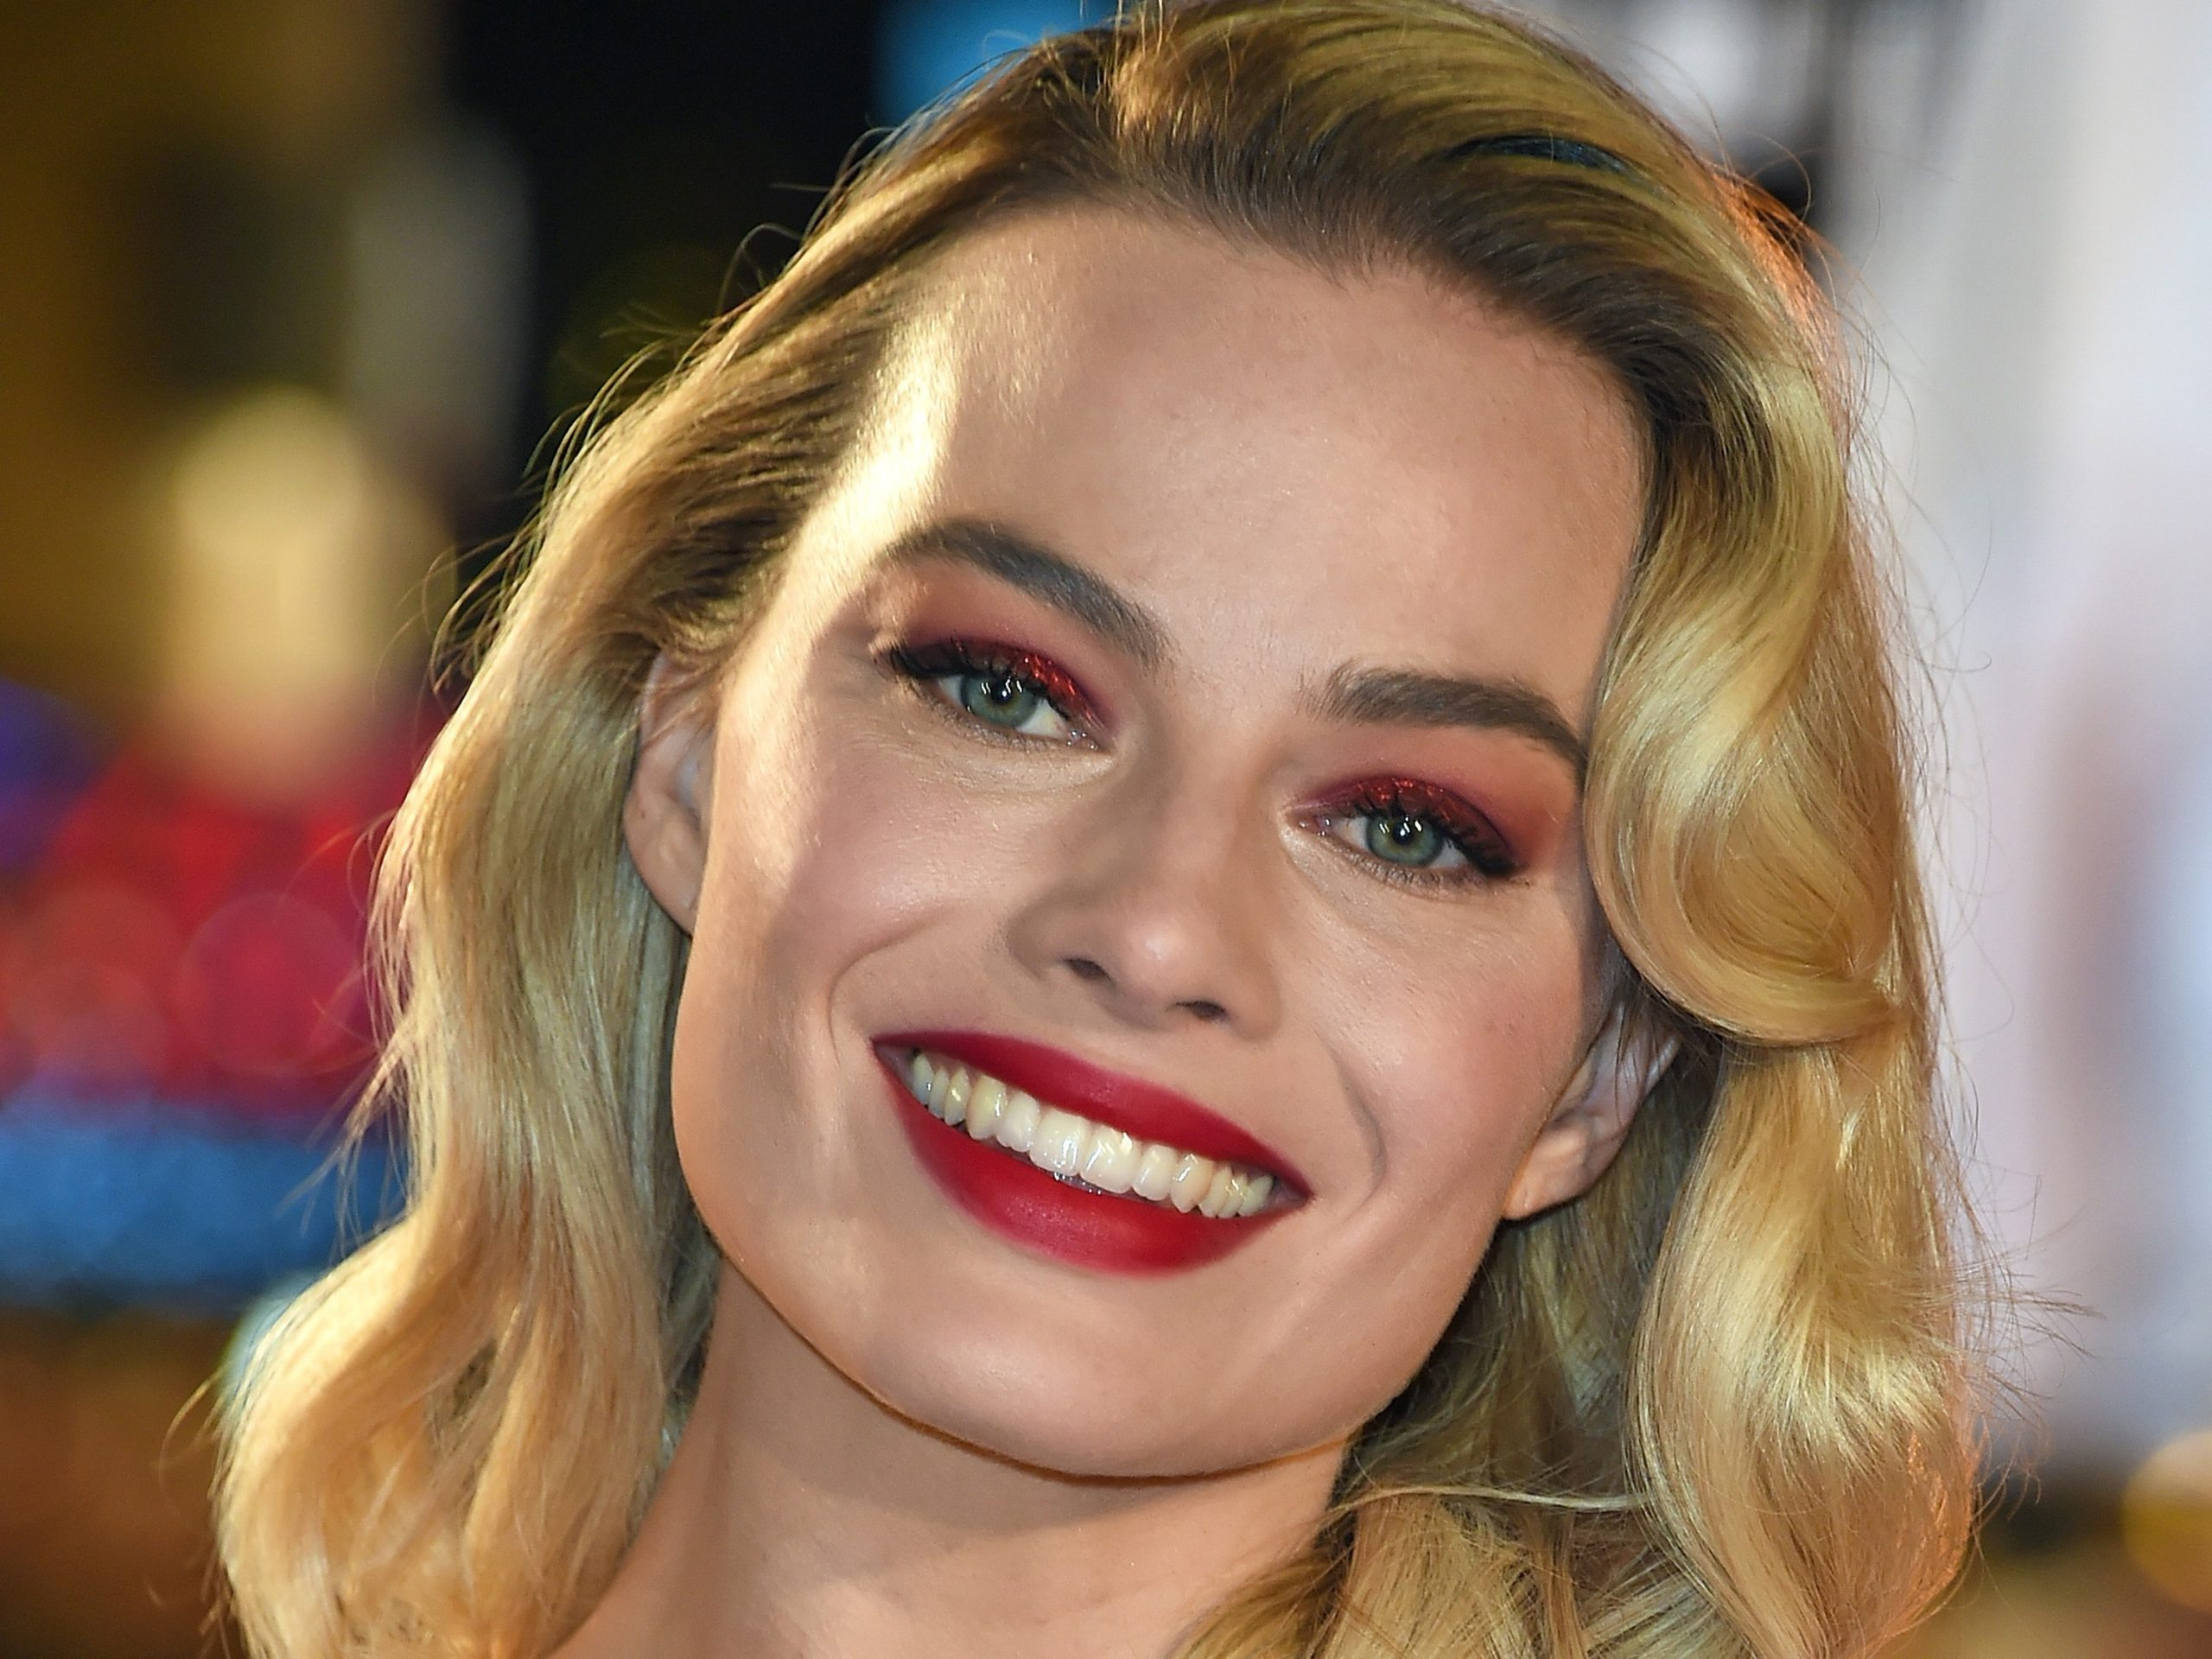 Margot Robbie Hot Red Lips scaled - Margot Robbie Net Worth, Pics, Wallpapers, Career and Biography